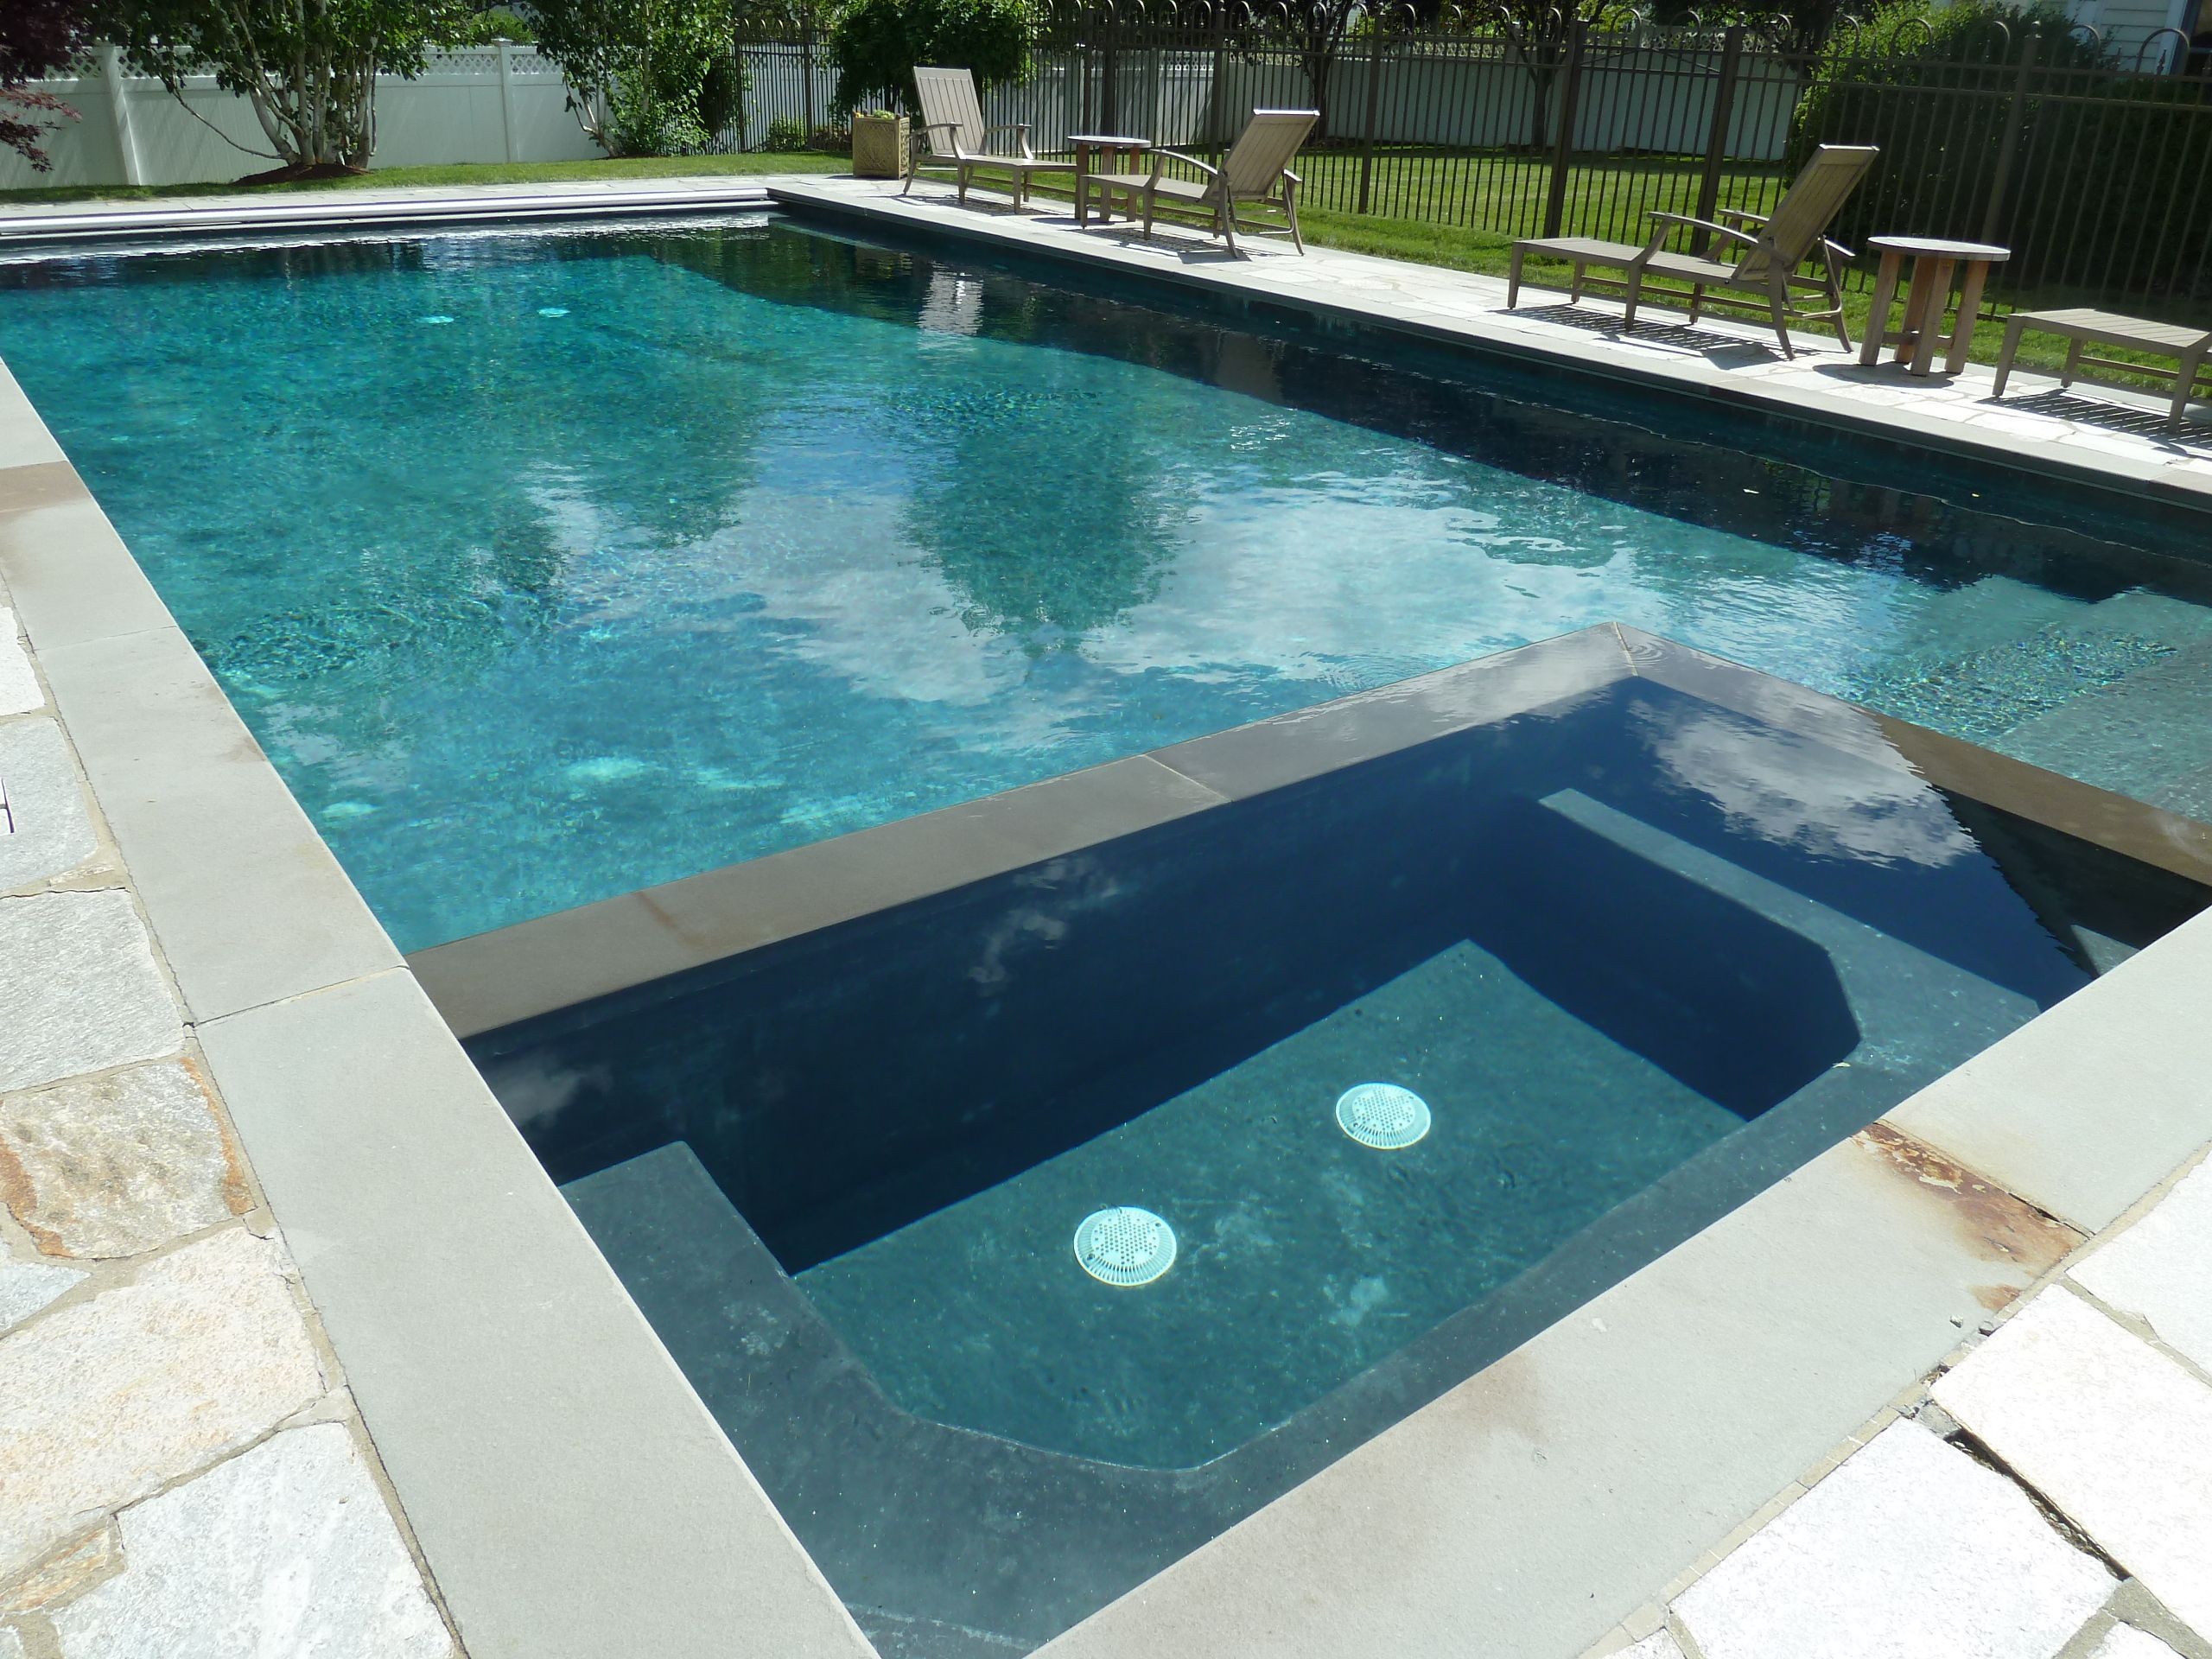 Jacuzzi Pool In Ground Rectangle Gunite In Ground Swimming Pool And Spa With Automatic